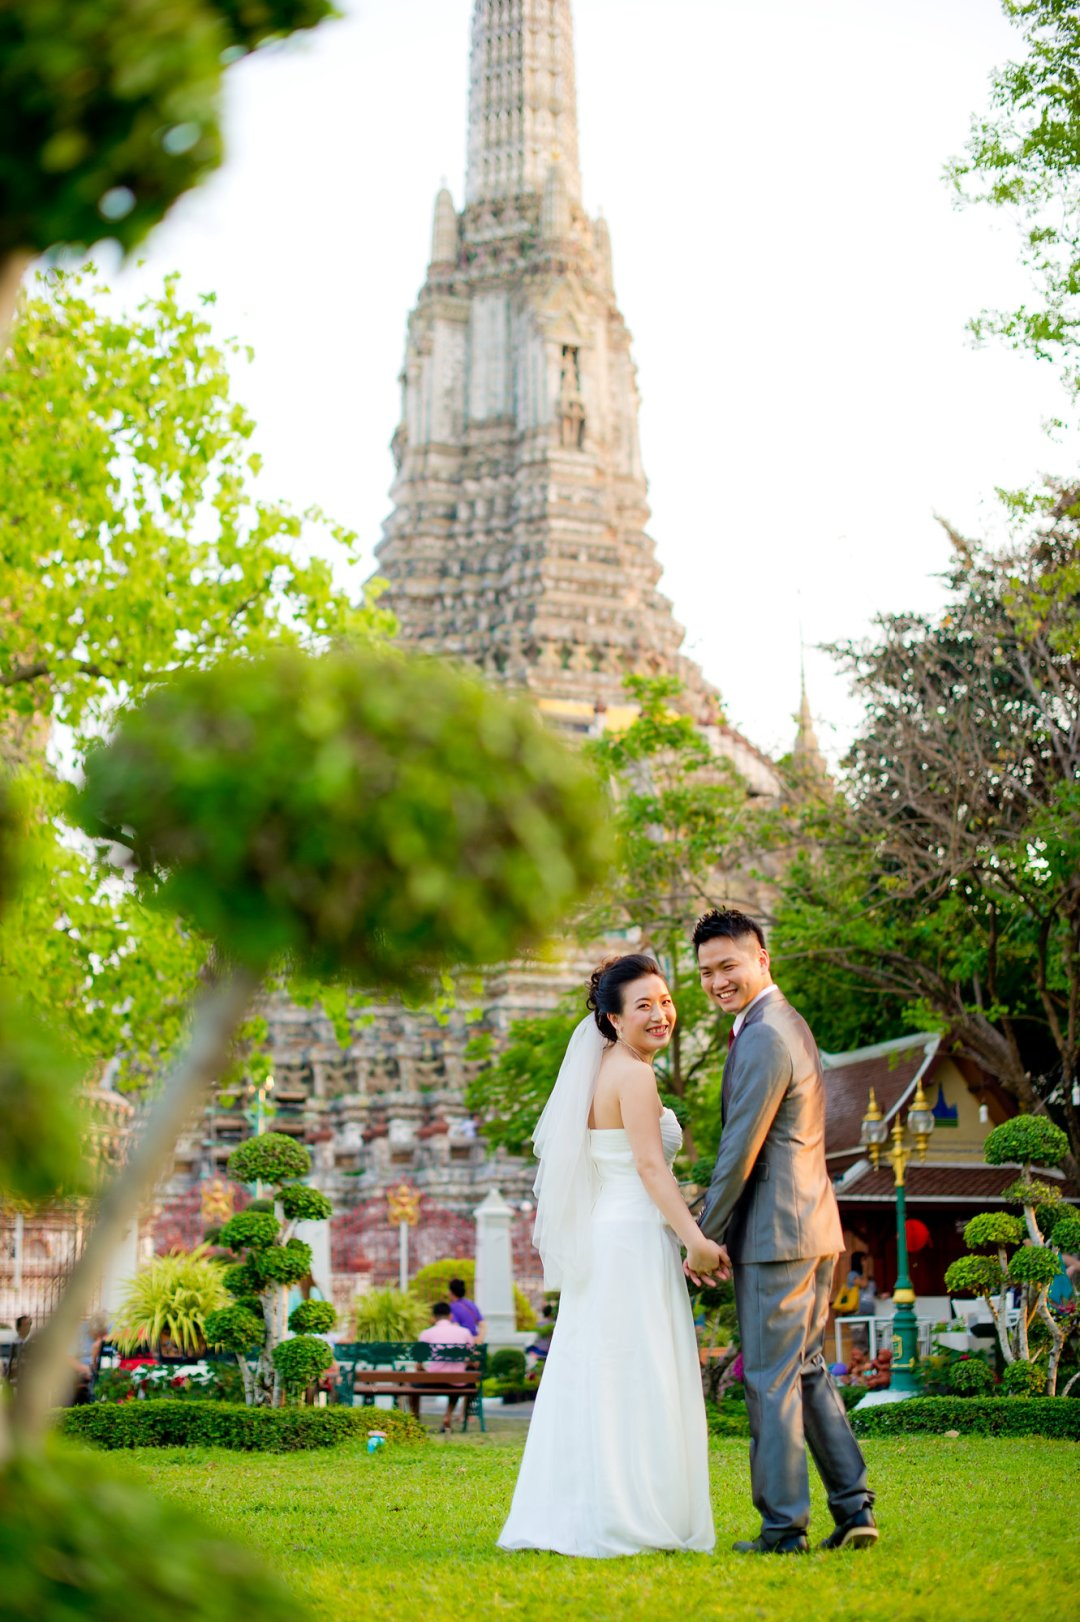 Pre-Wedding @ Wat Arun (Temple of Dawn) | Bangkok Wedding Photography